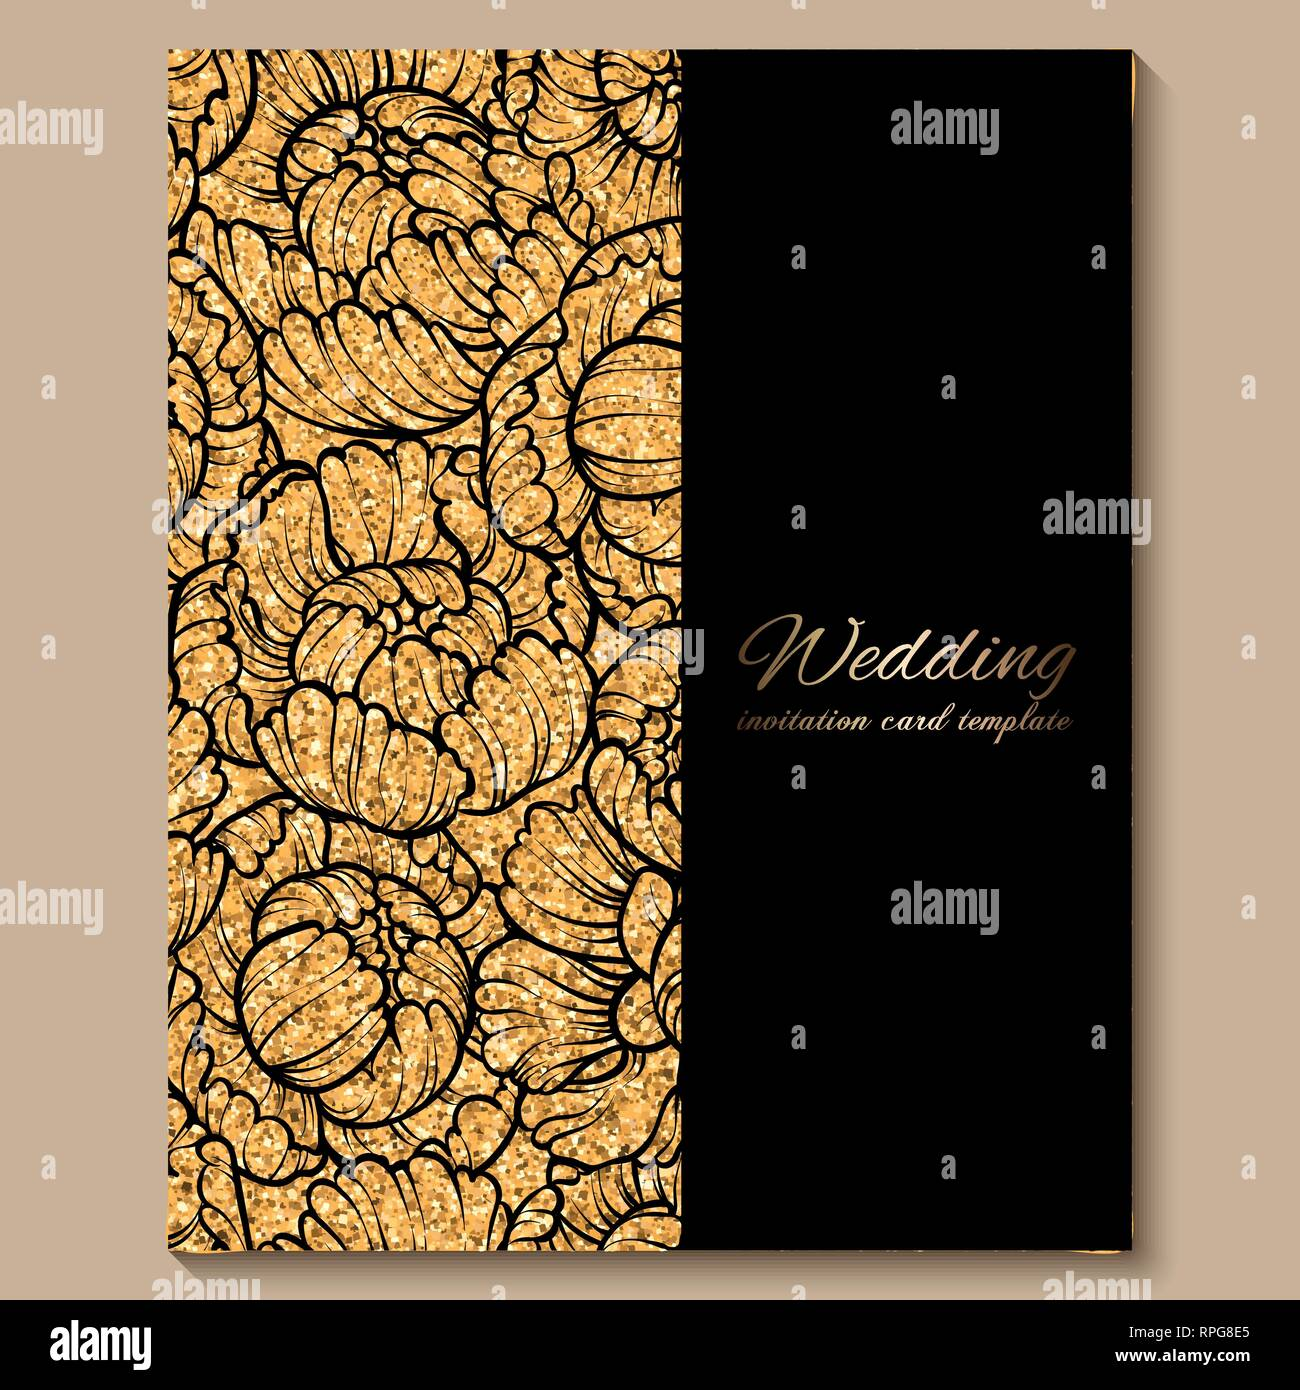 https www alamy com antique royal luxury wedding invitation card golden glitter background with frame and place for text black lacy foliage made of roses or peonies image237615117 html